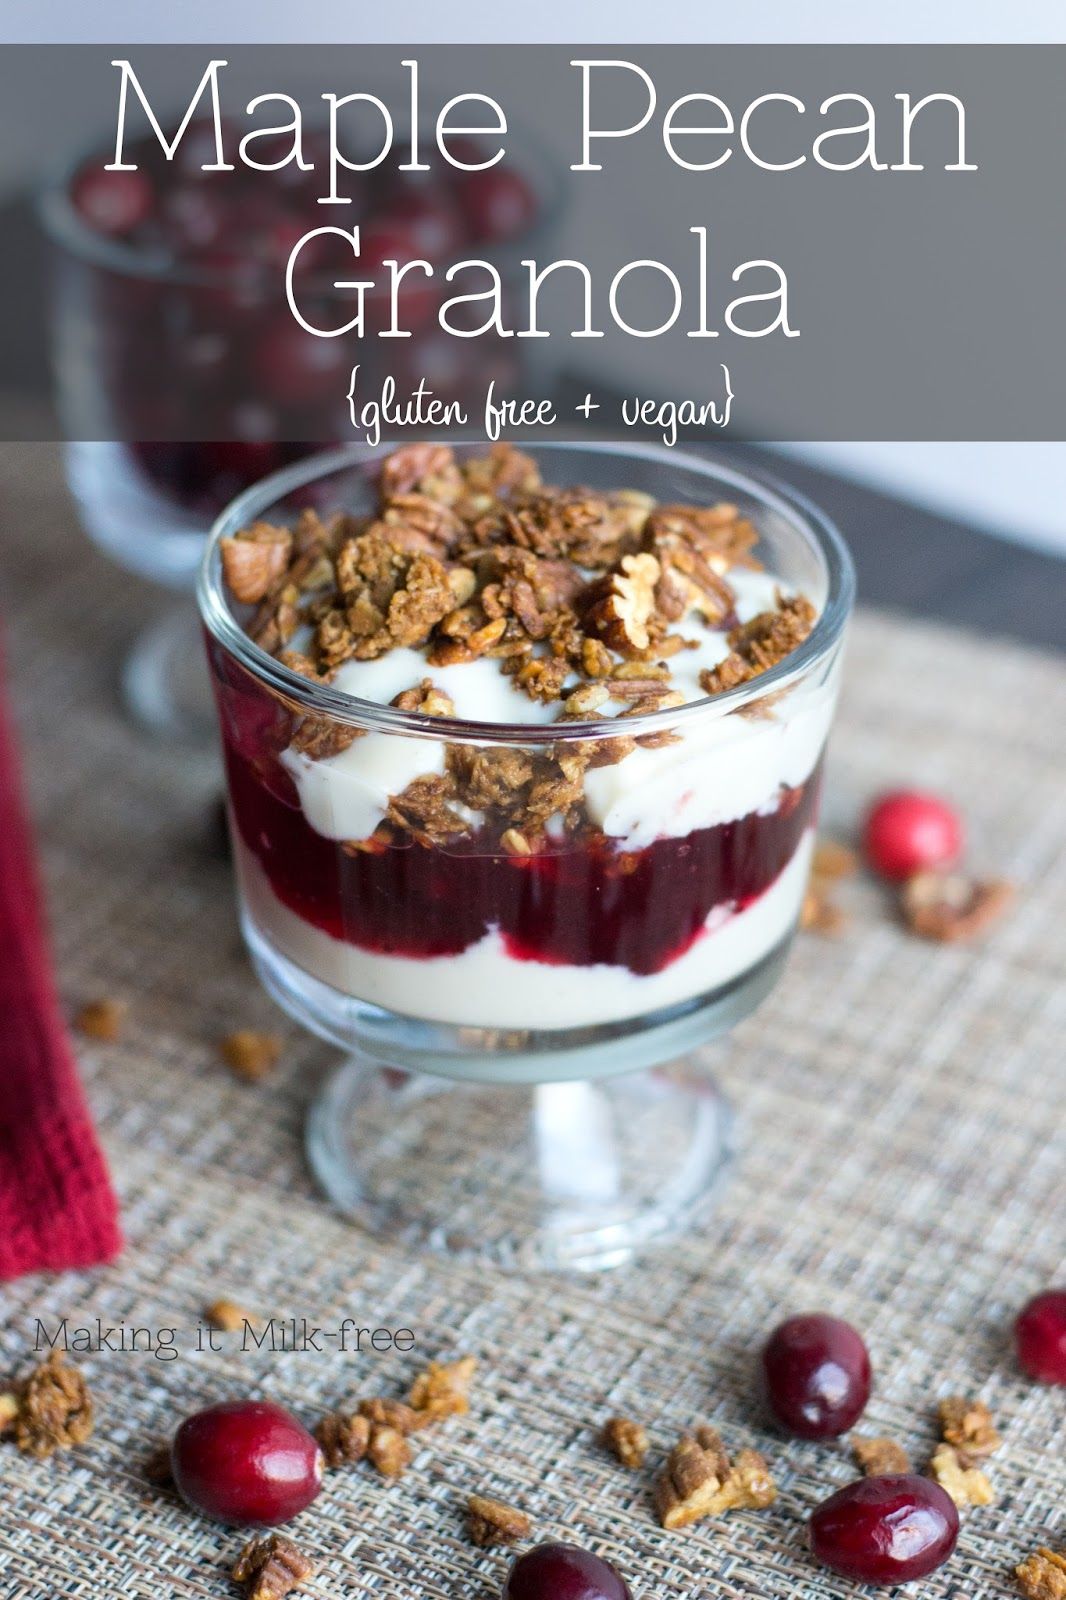 Crunchy, salty and slightly sweet granola with a hint of cinnamon and maple. Perfect for layering with your favorite dairy-free yogurt for a breakfast parfait.